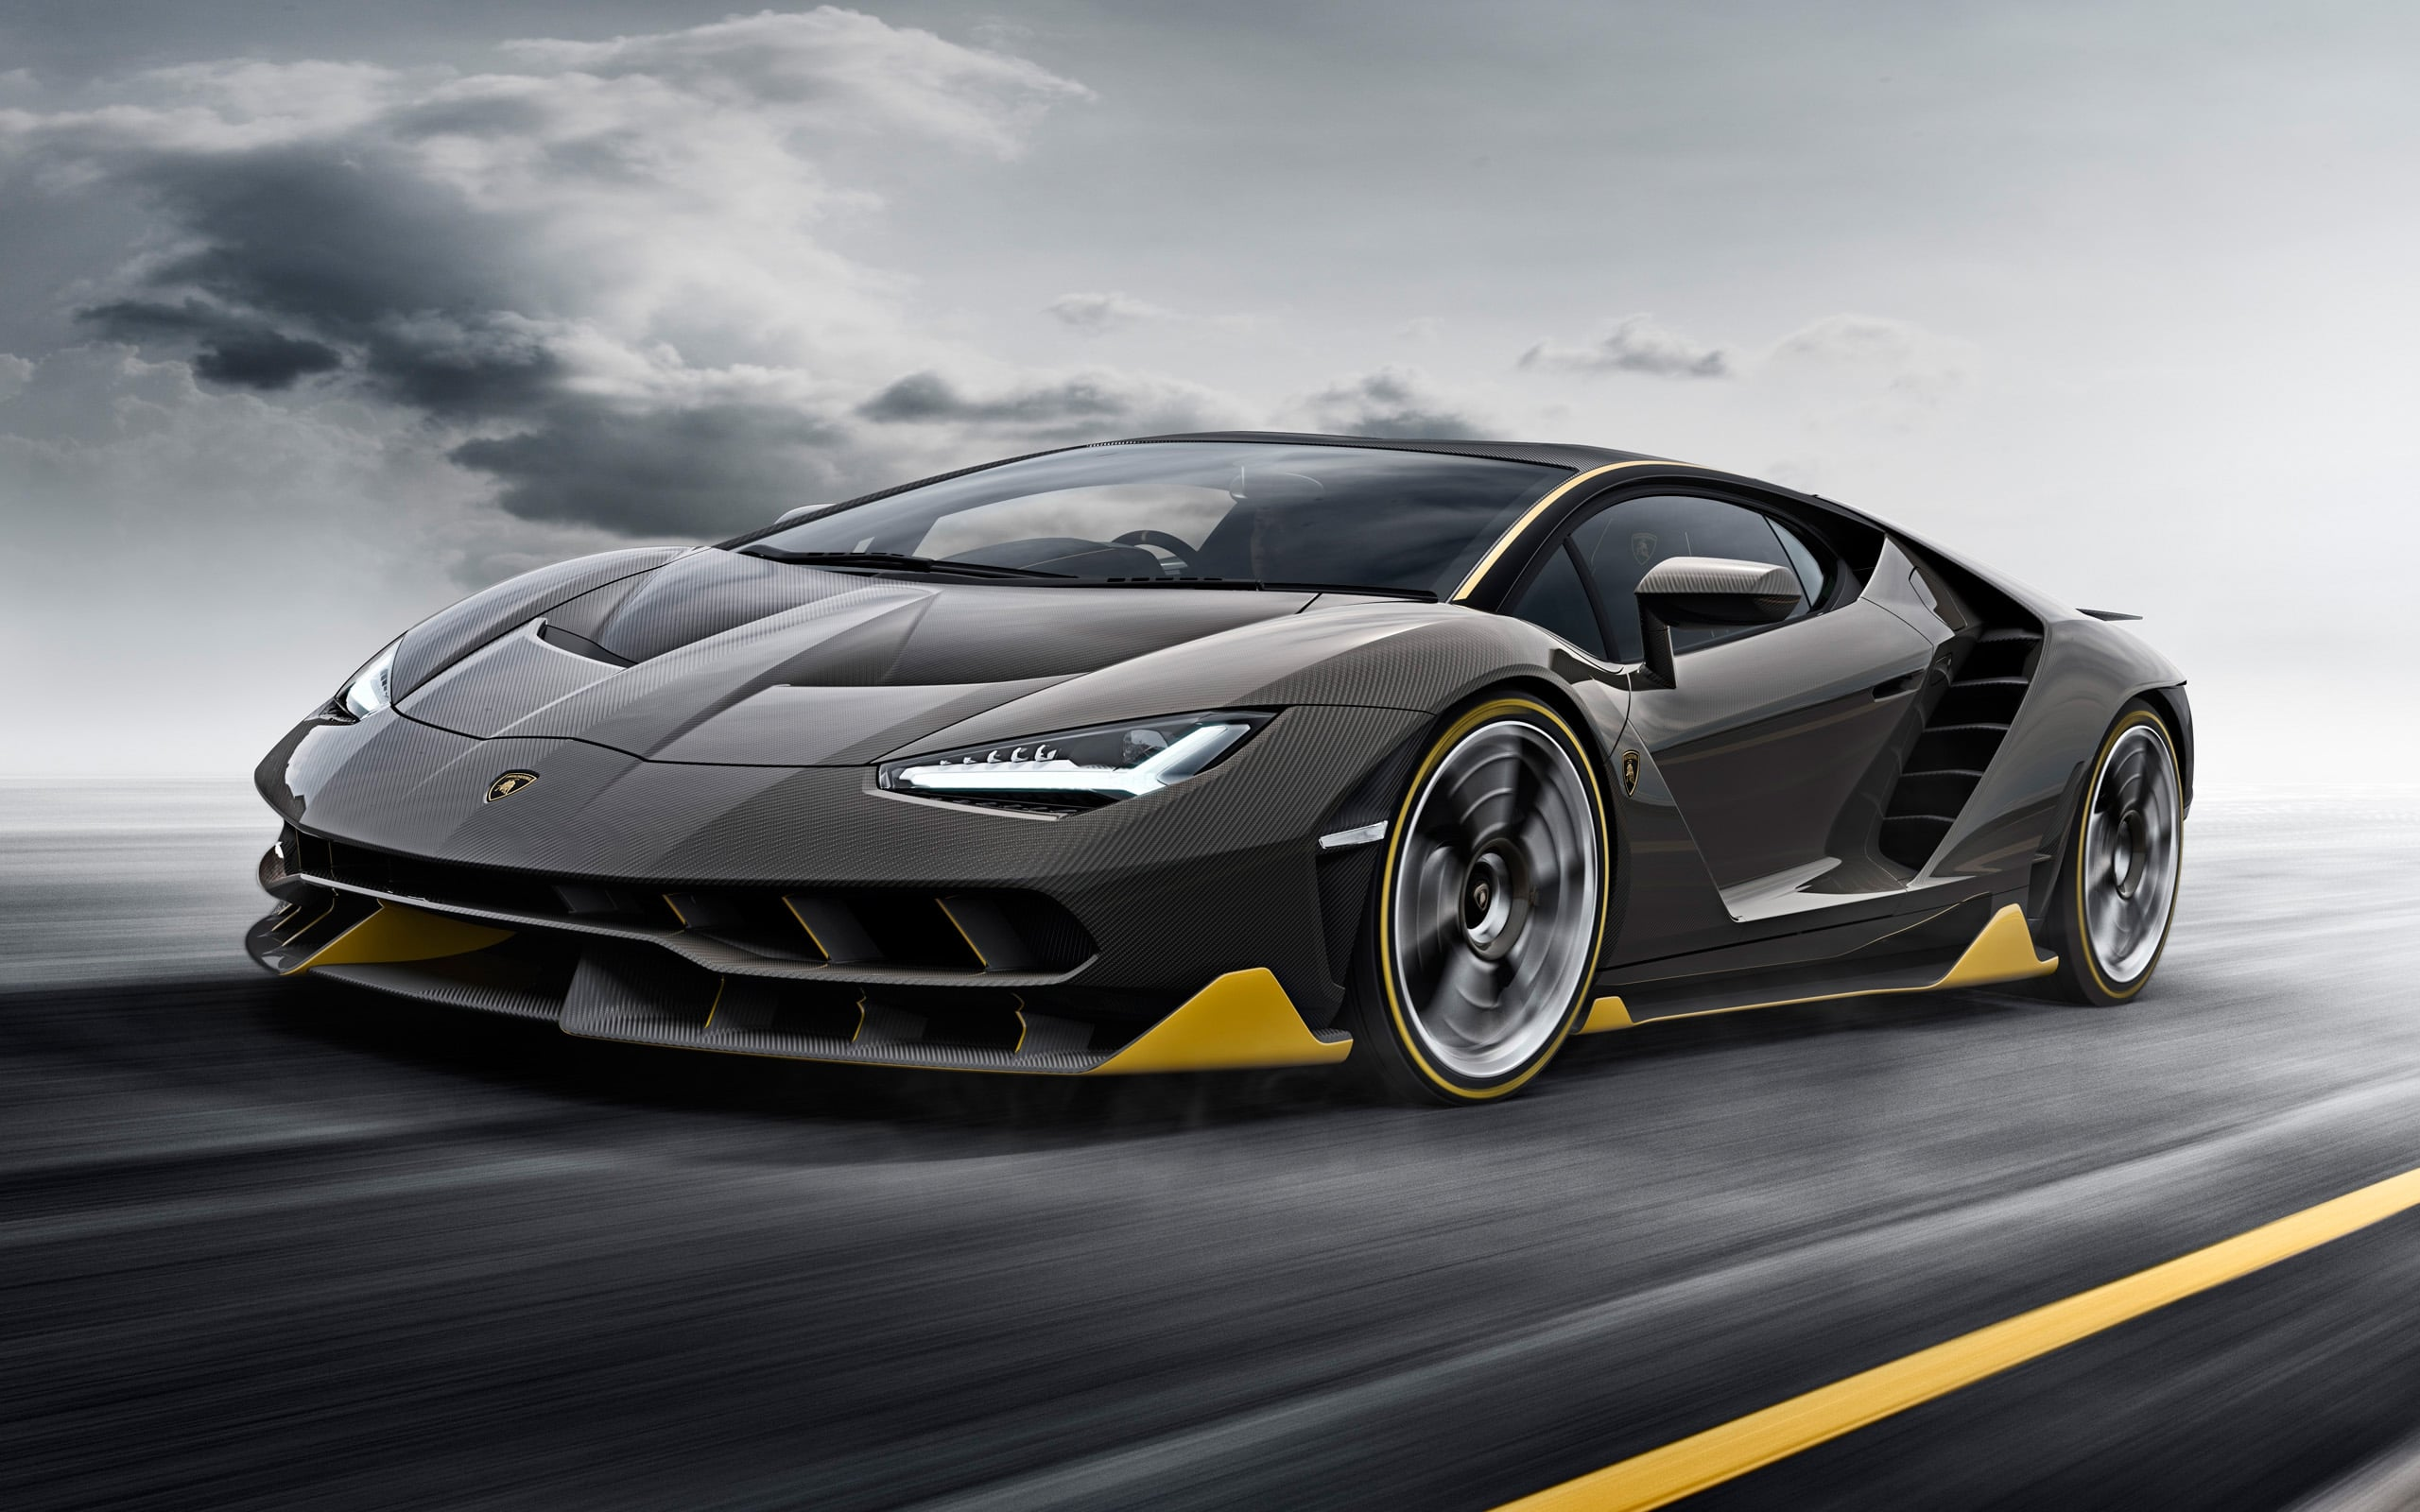 2016 Lamborghini Centenario LP 770 4 motion High Resolution wallpaper